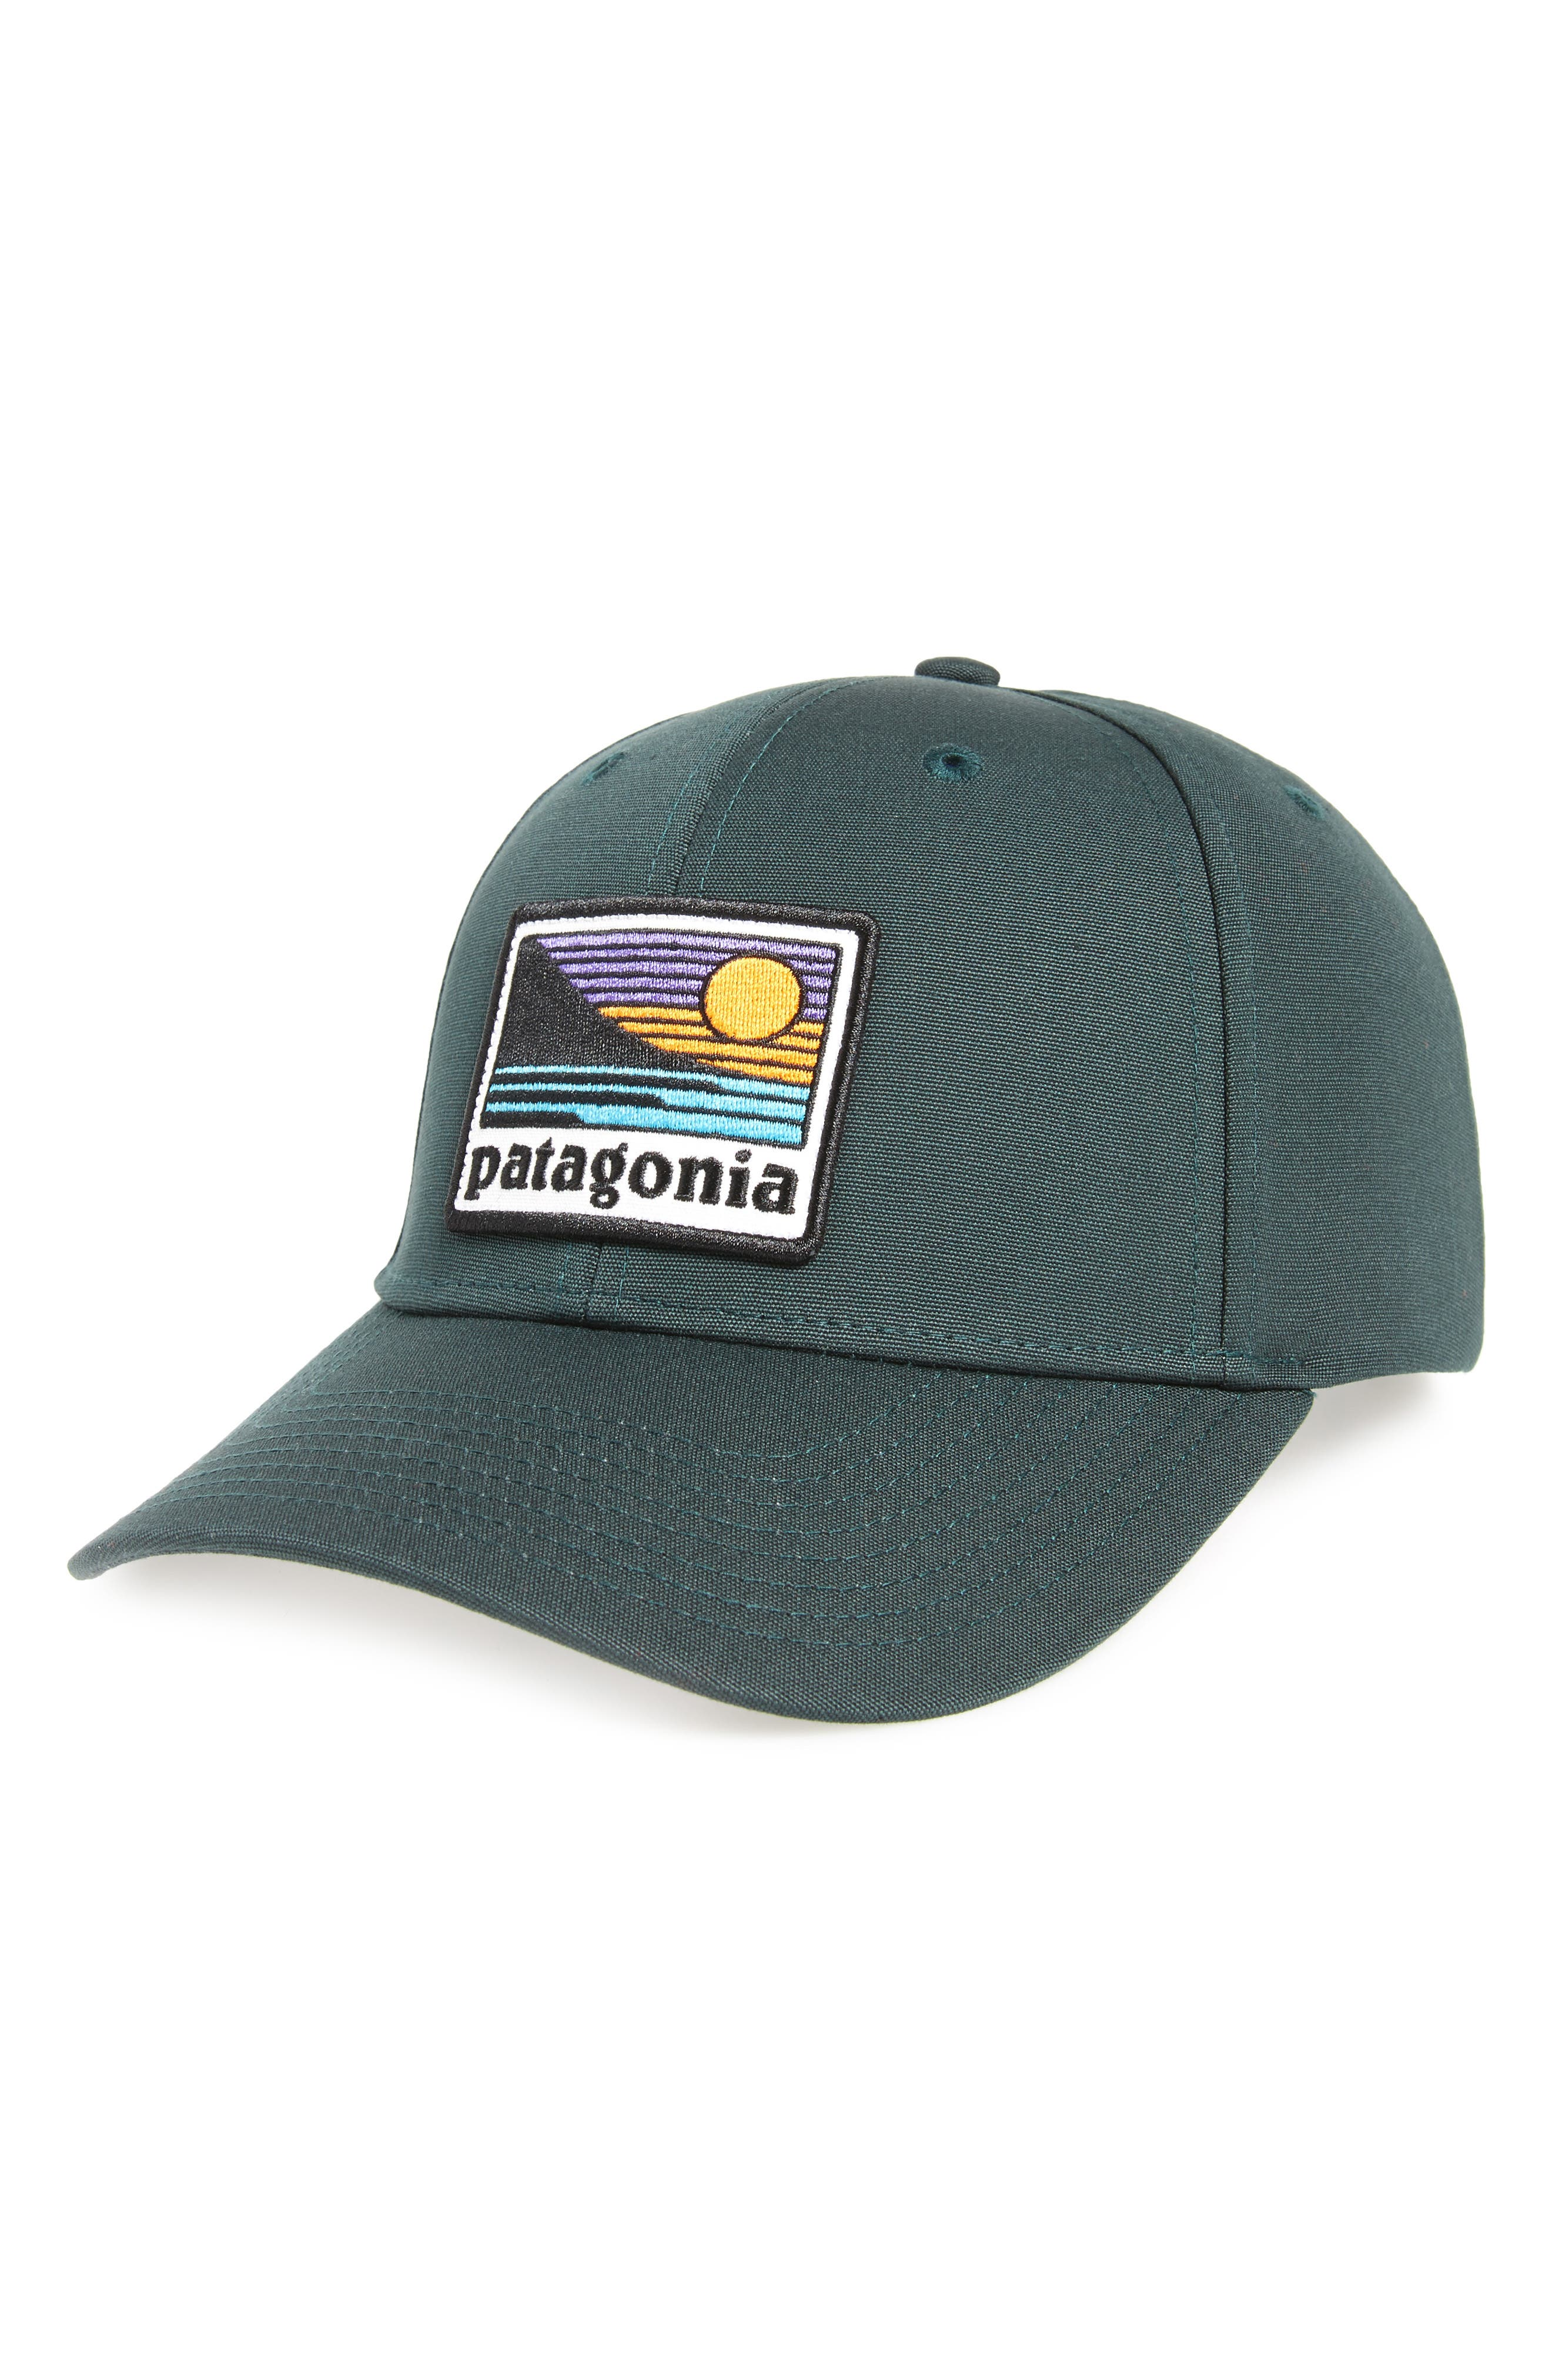 Up & Out Roger That Trucker Cap,                         Main,                         color, 021